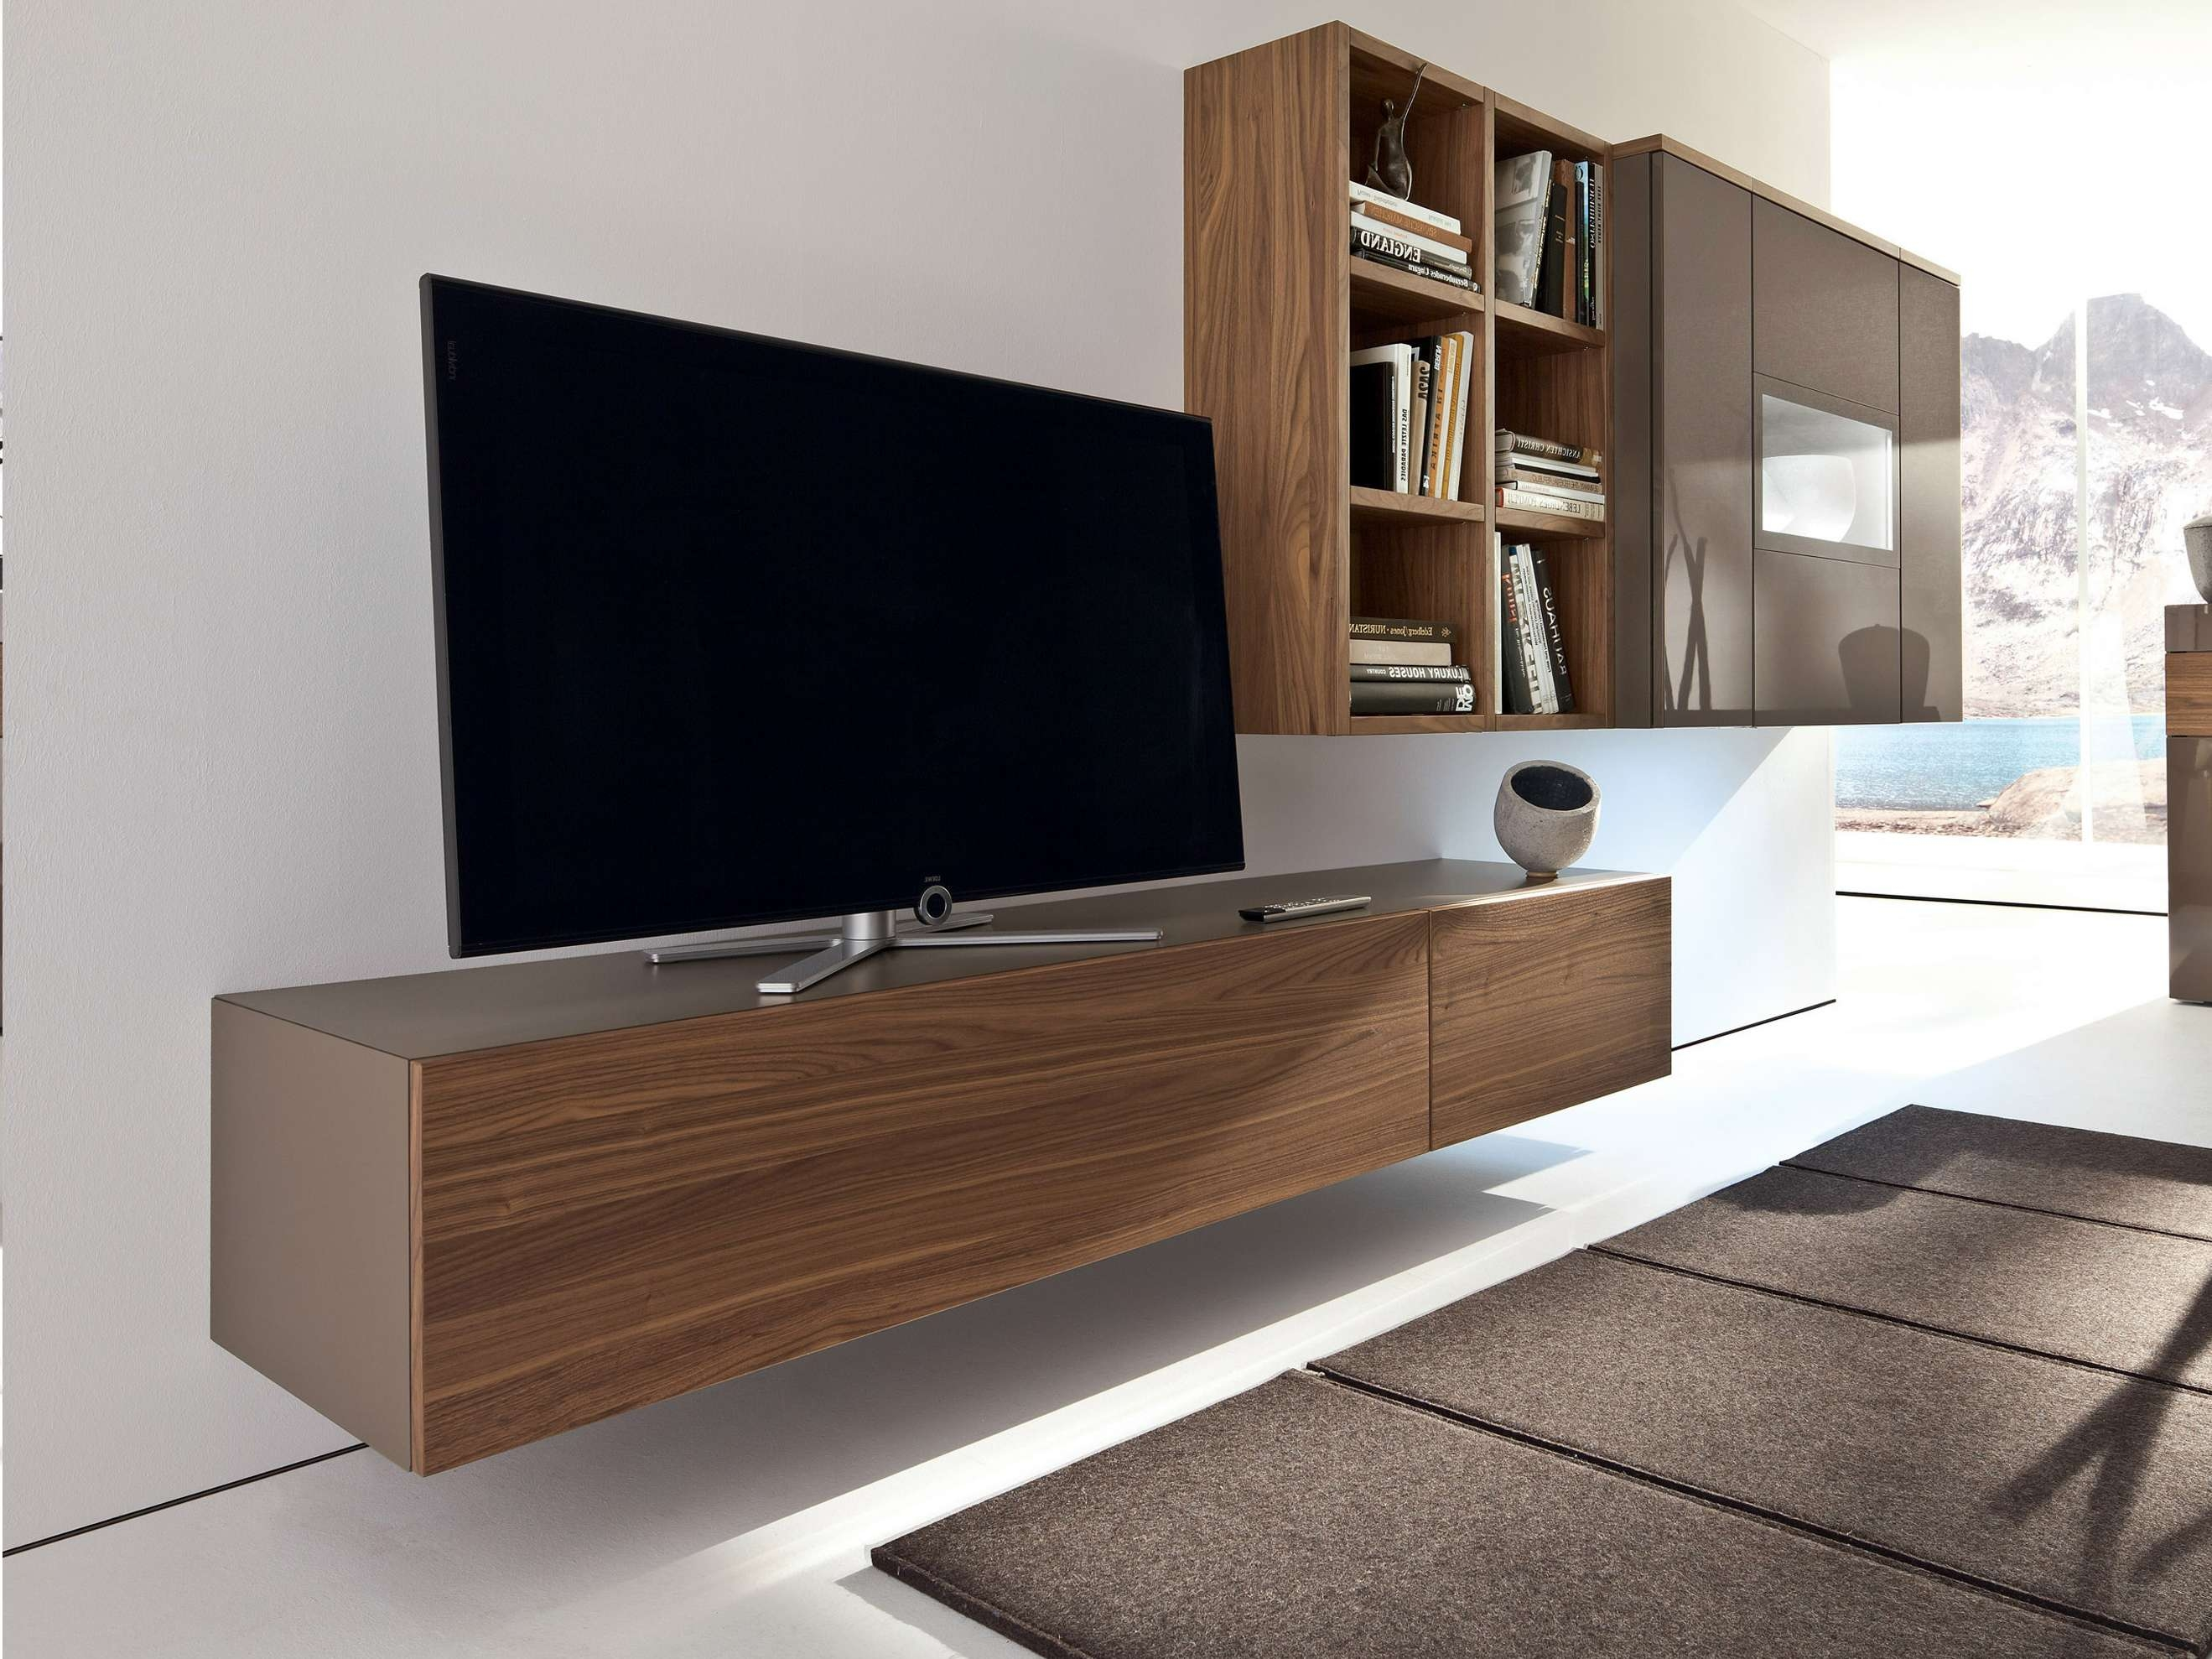 Wall Mounted Under Tv Cabinet – Imanisr Inside Wall Mounted Under Tv Cabinets (View 7 of 20)